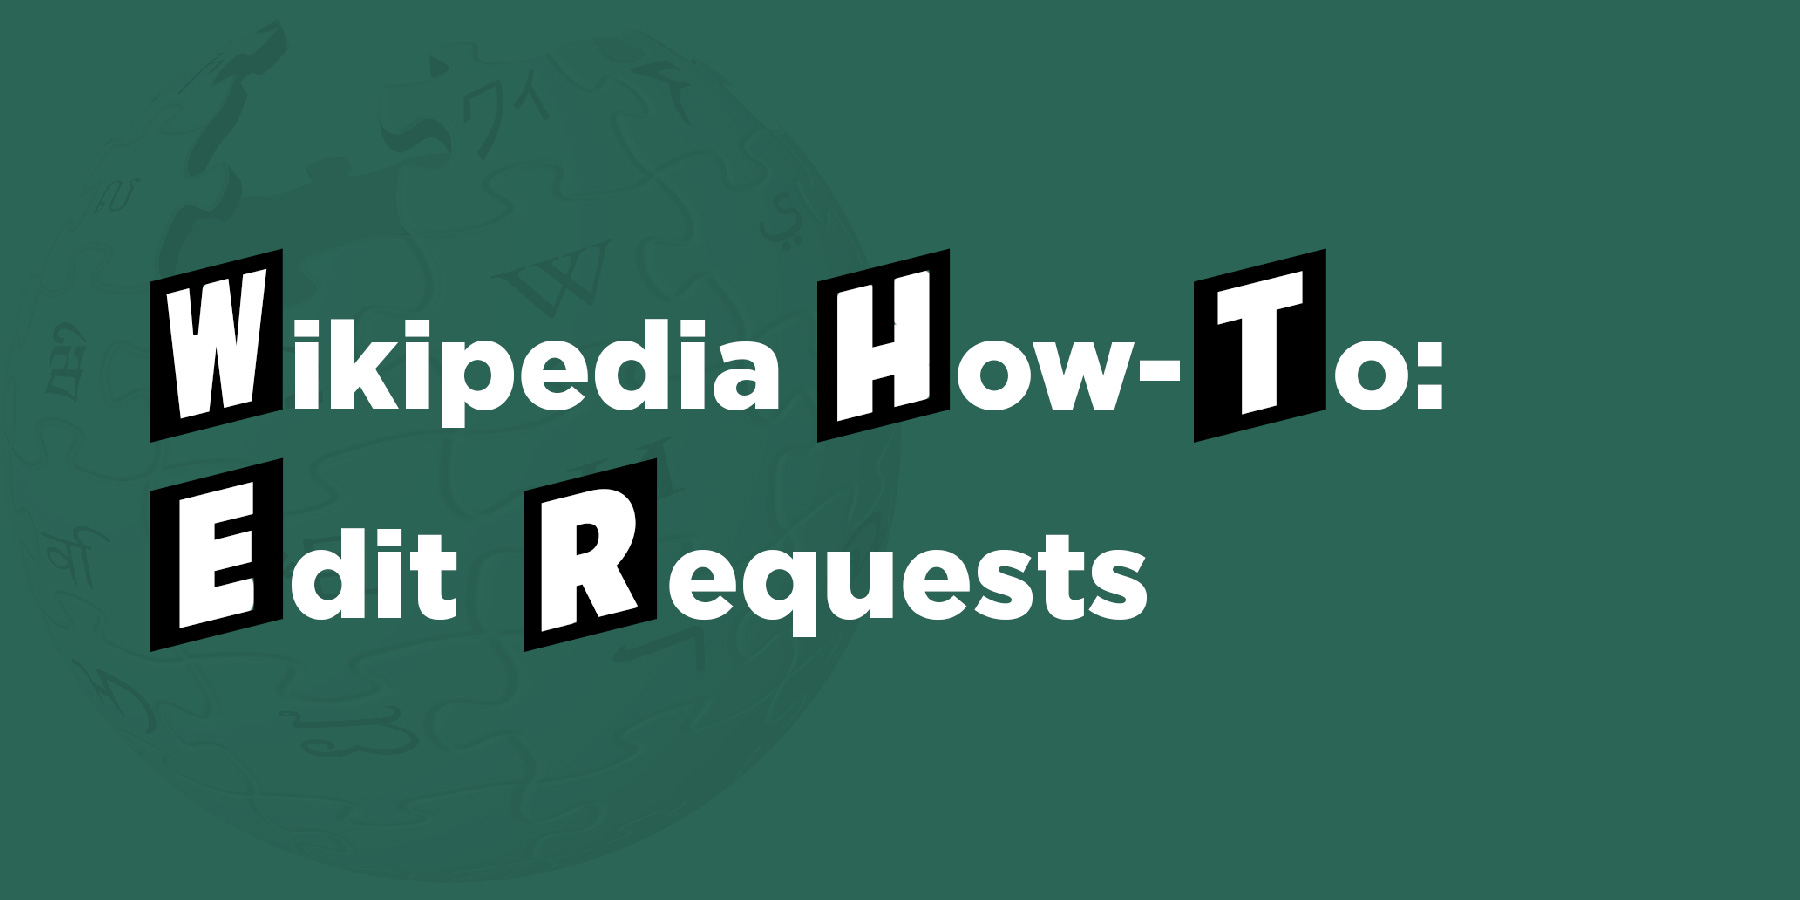 Wikipedia How-To: Edit Requests